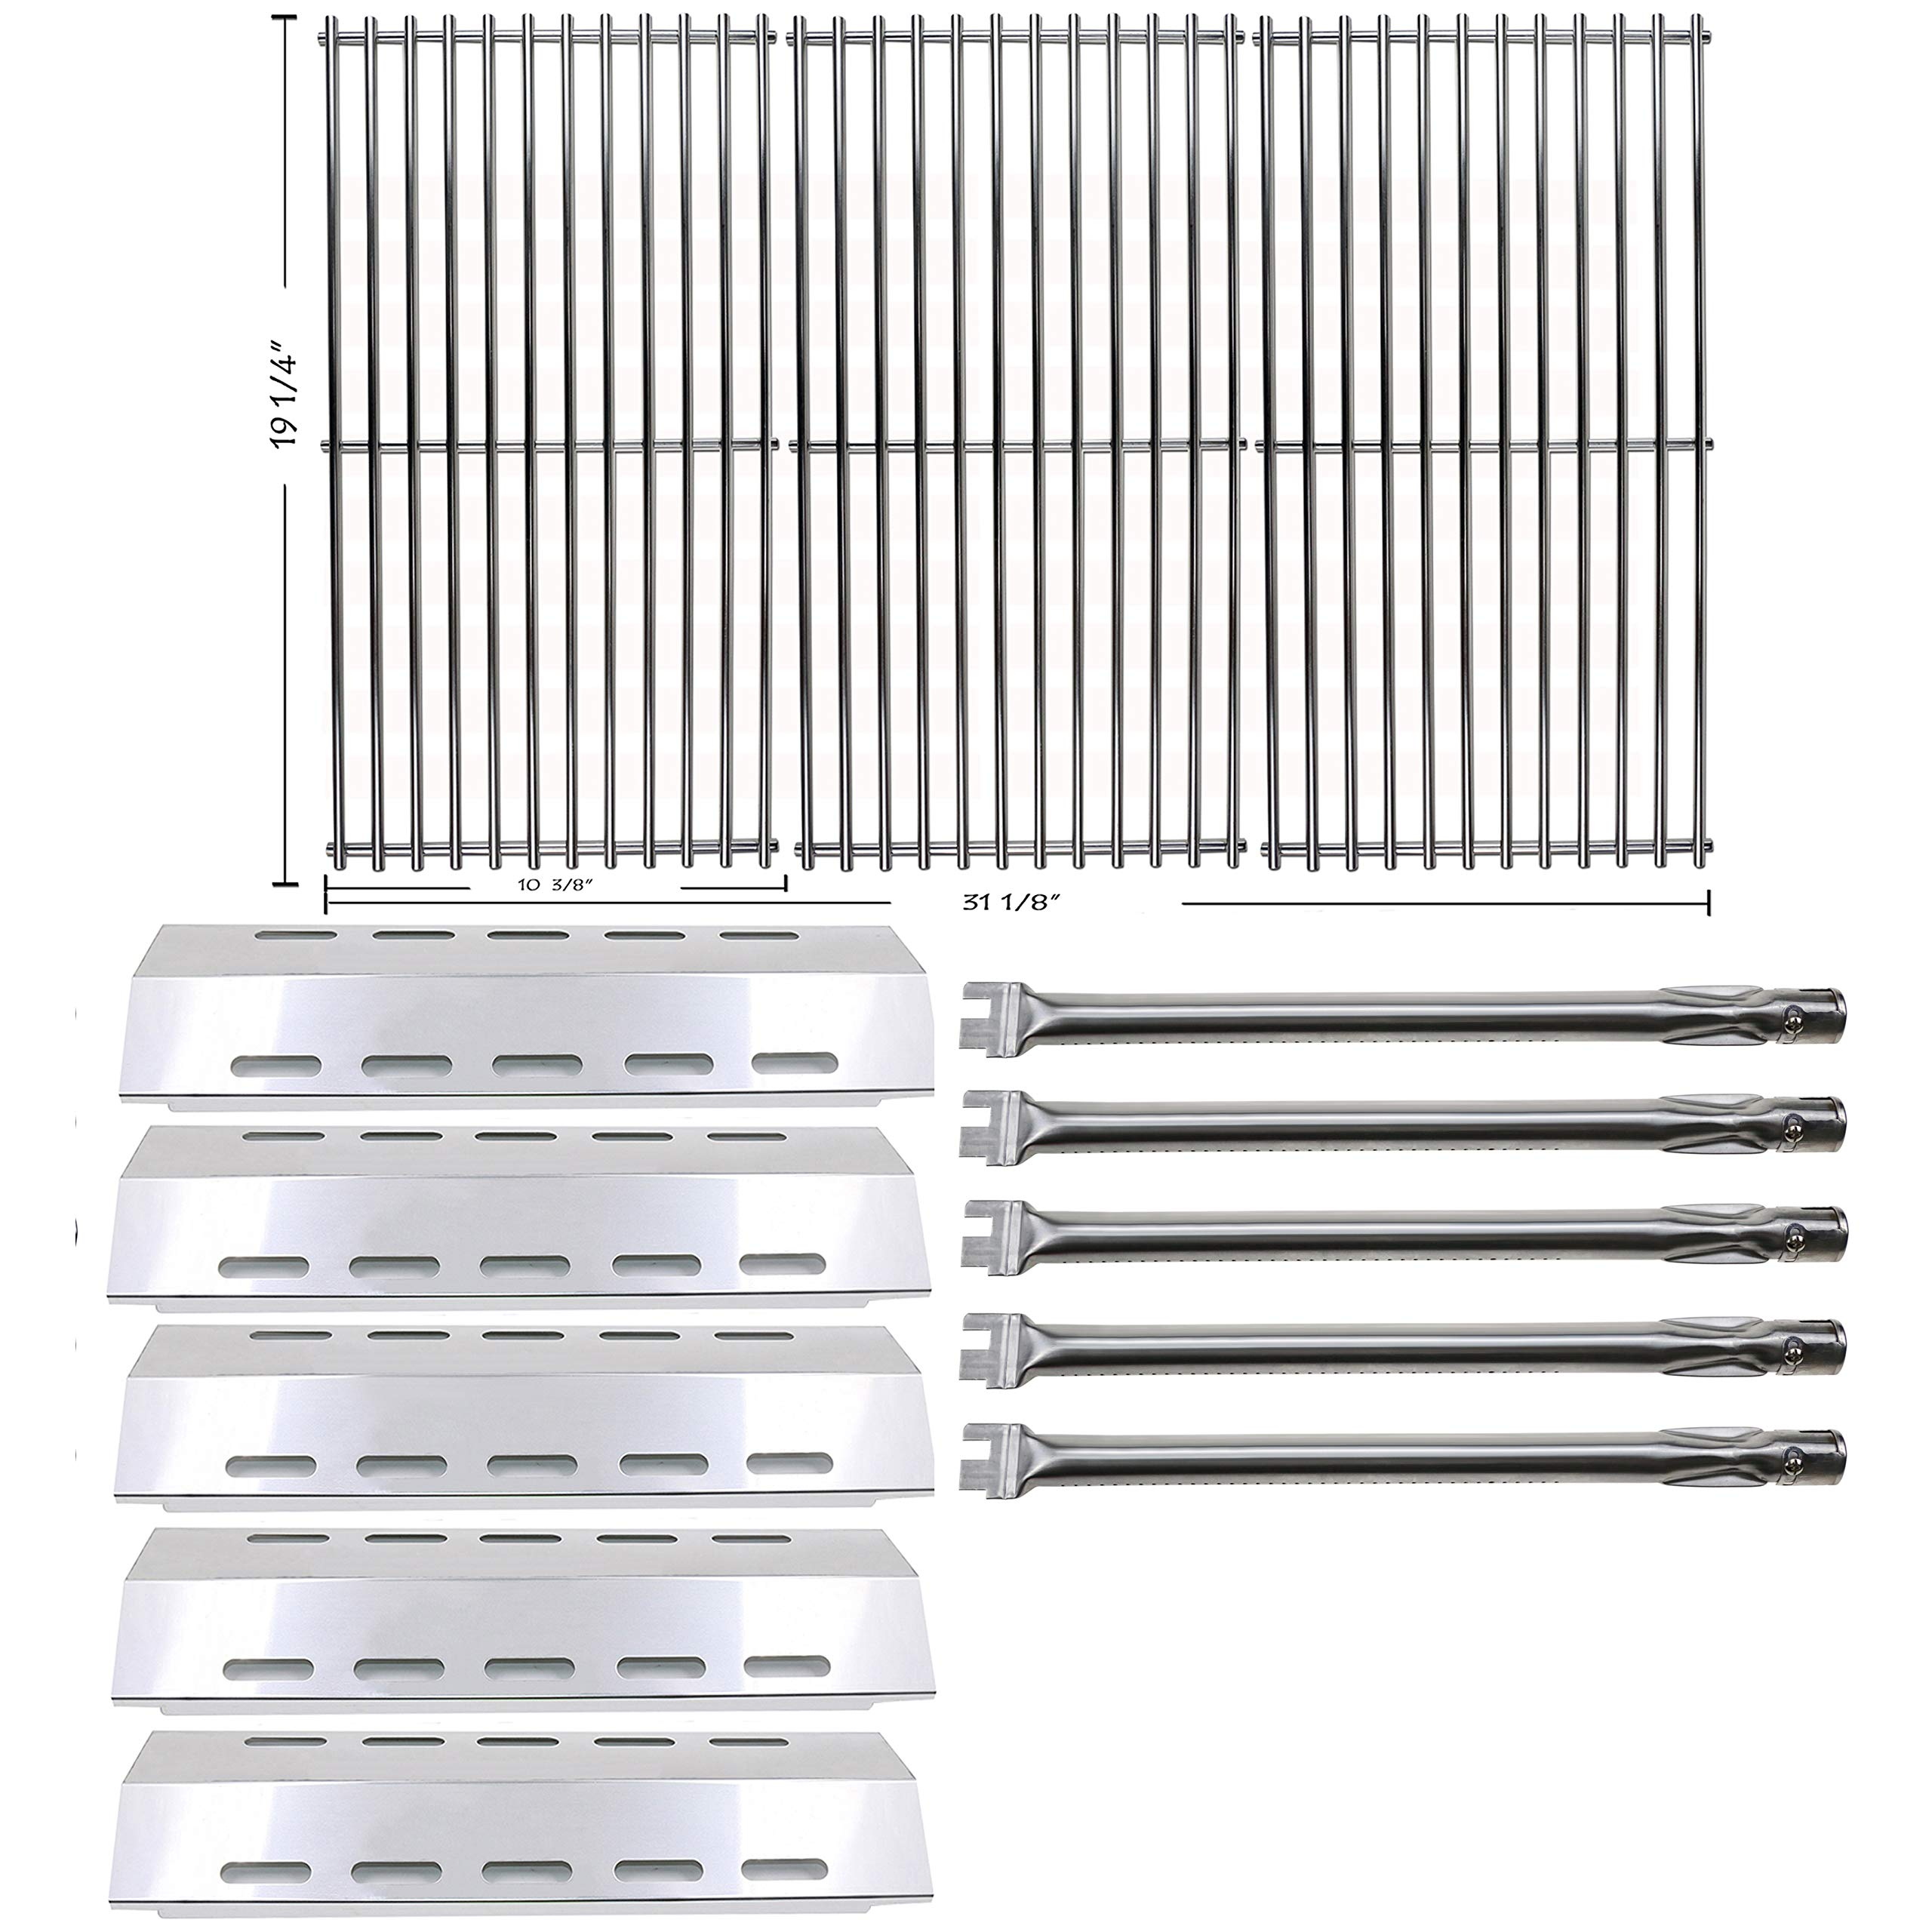 Hisencn Repair kit Replacement for Ducane 30400042,30400043,30558501 Gas Stainless Steel Grill Burner Tupe,Heat Plates Tent Sheild,Cooking Grid Grates by Hisencn